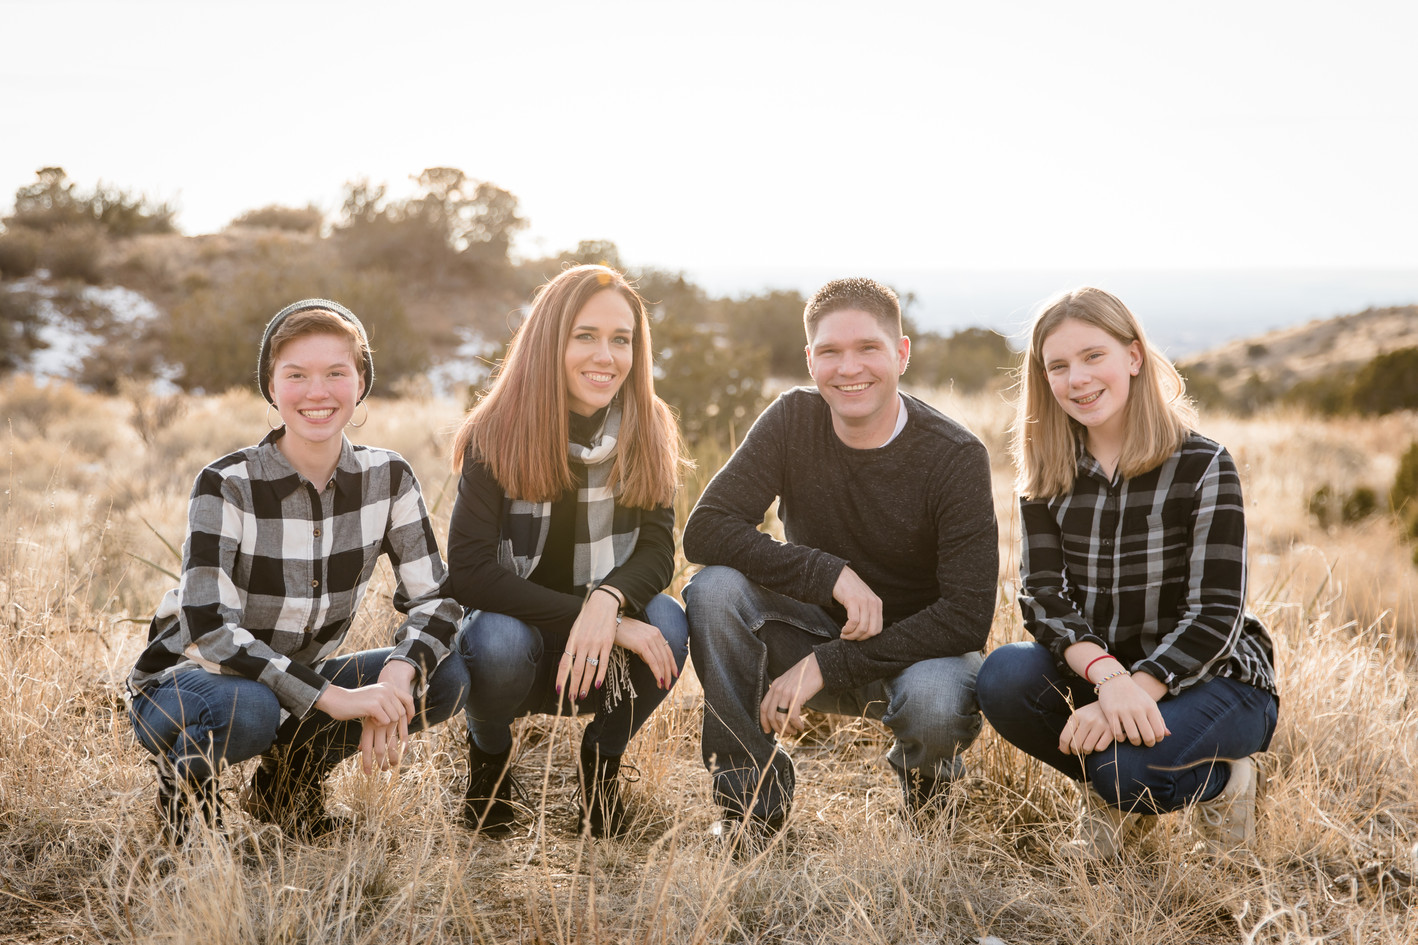 BainbridgeFamily-KateBucklesPhotography-